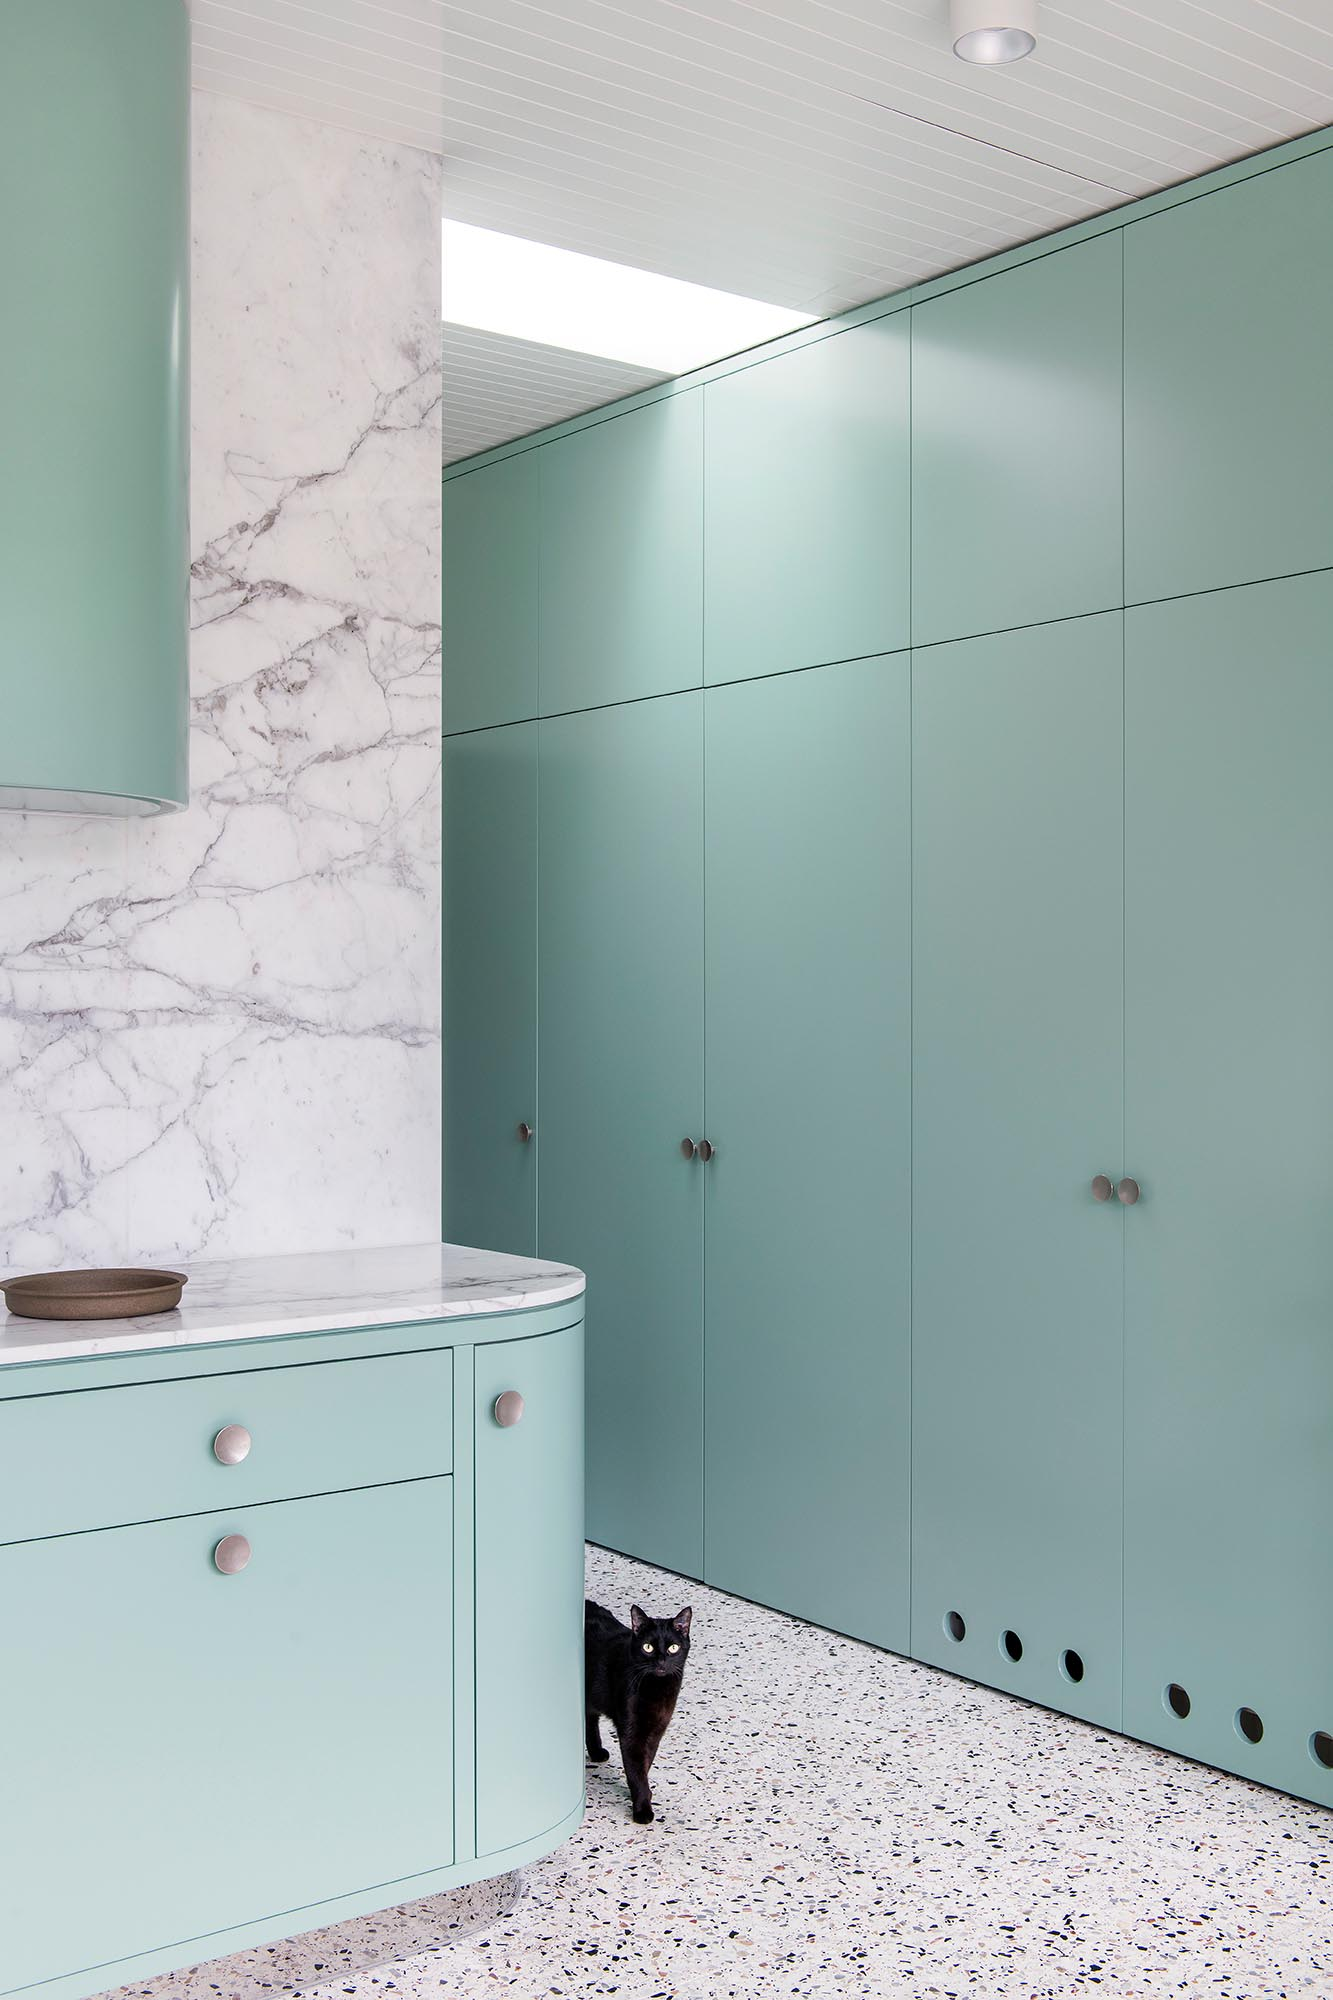 Modern mint green floor-to-ceiling cabinets.